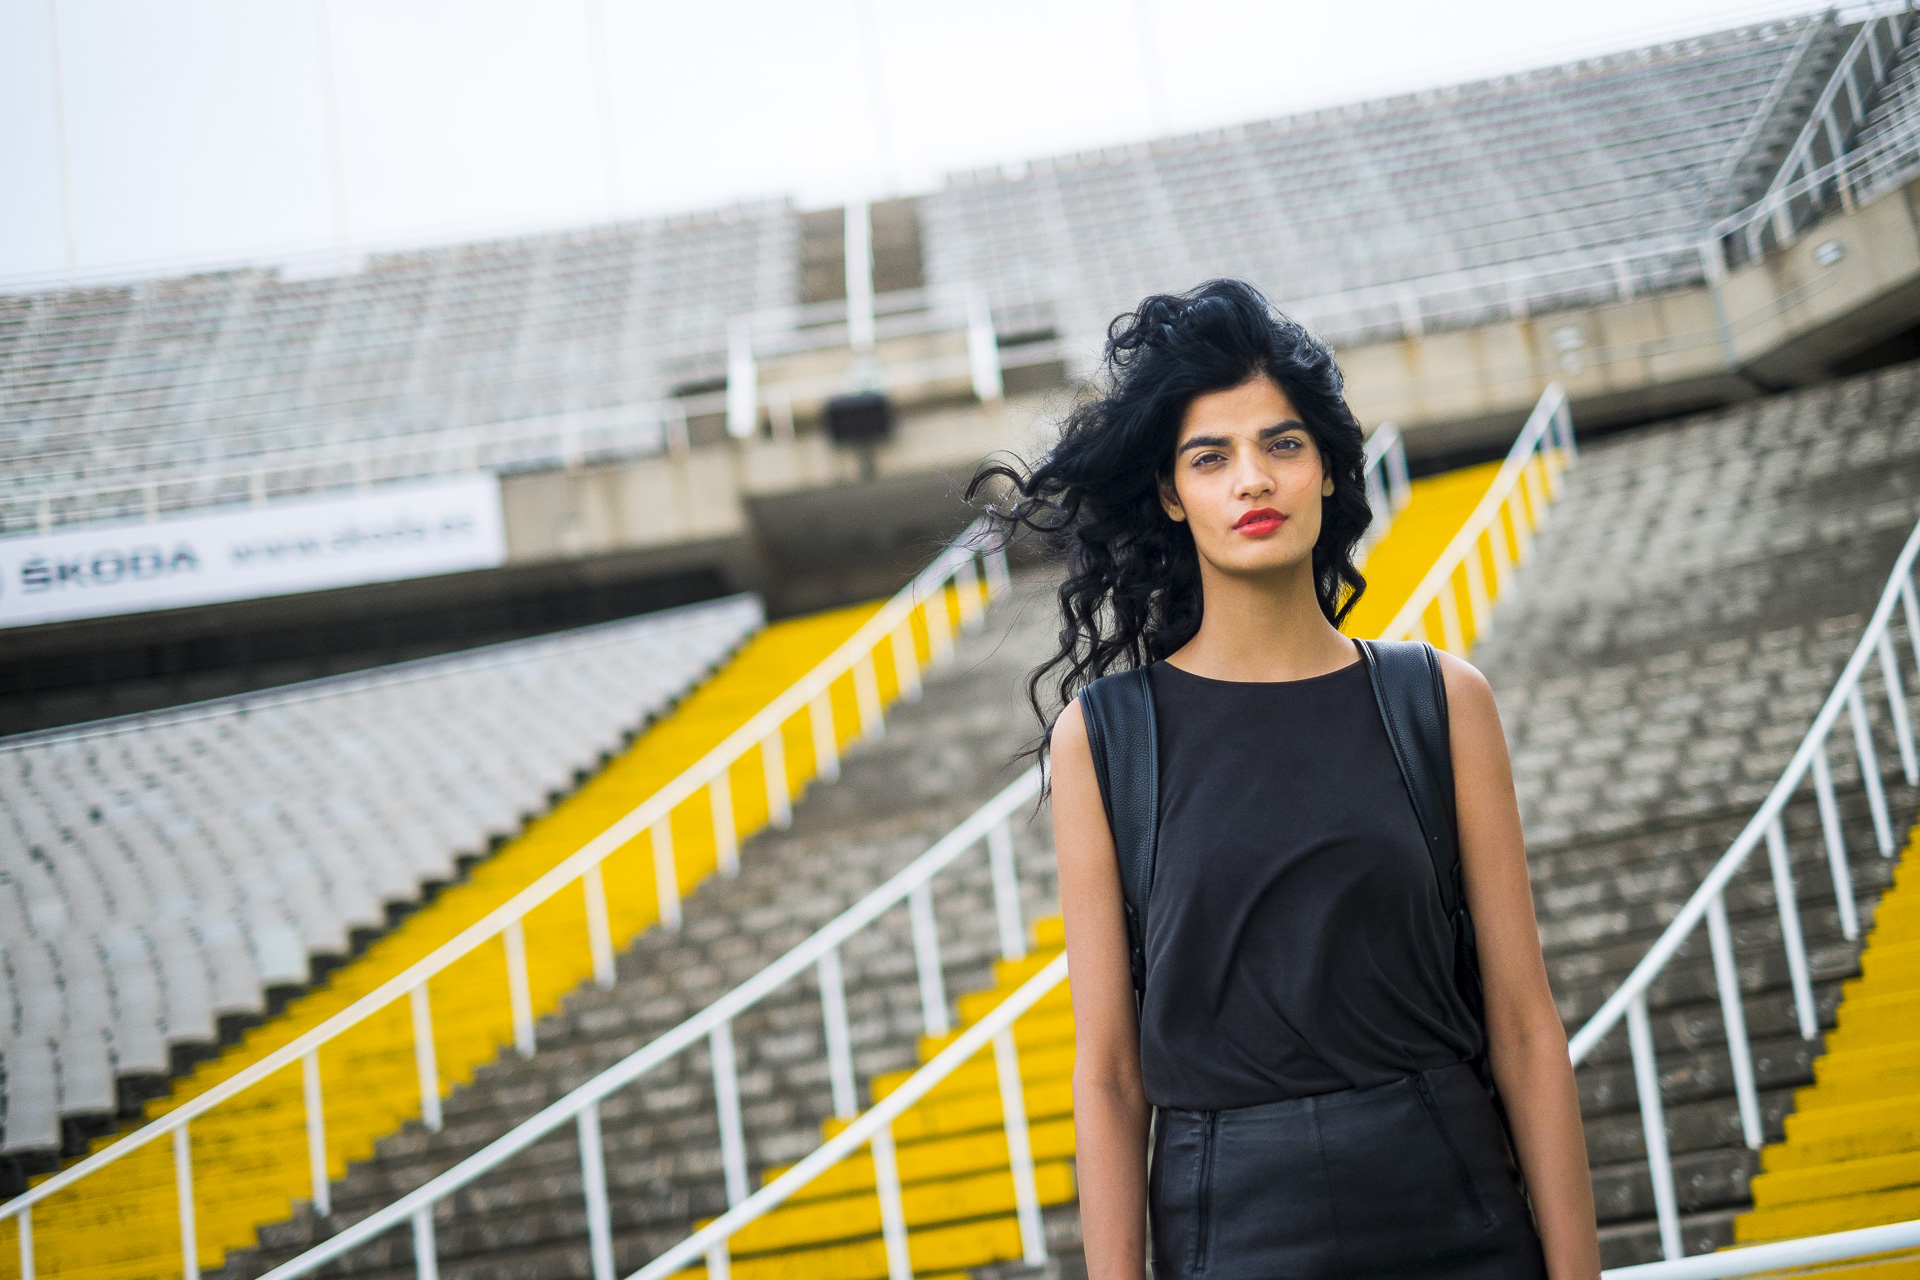 The indian model Bhumika Arora poses for a portrait in the Olympic Stadium